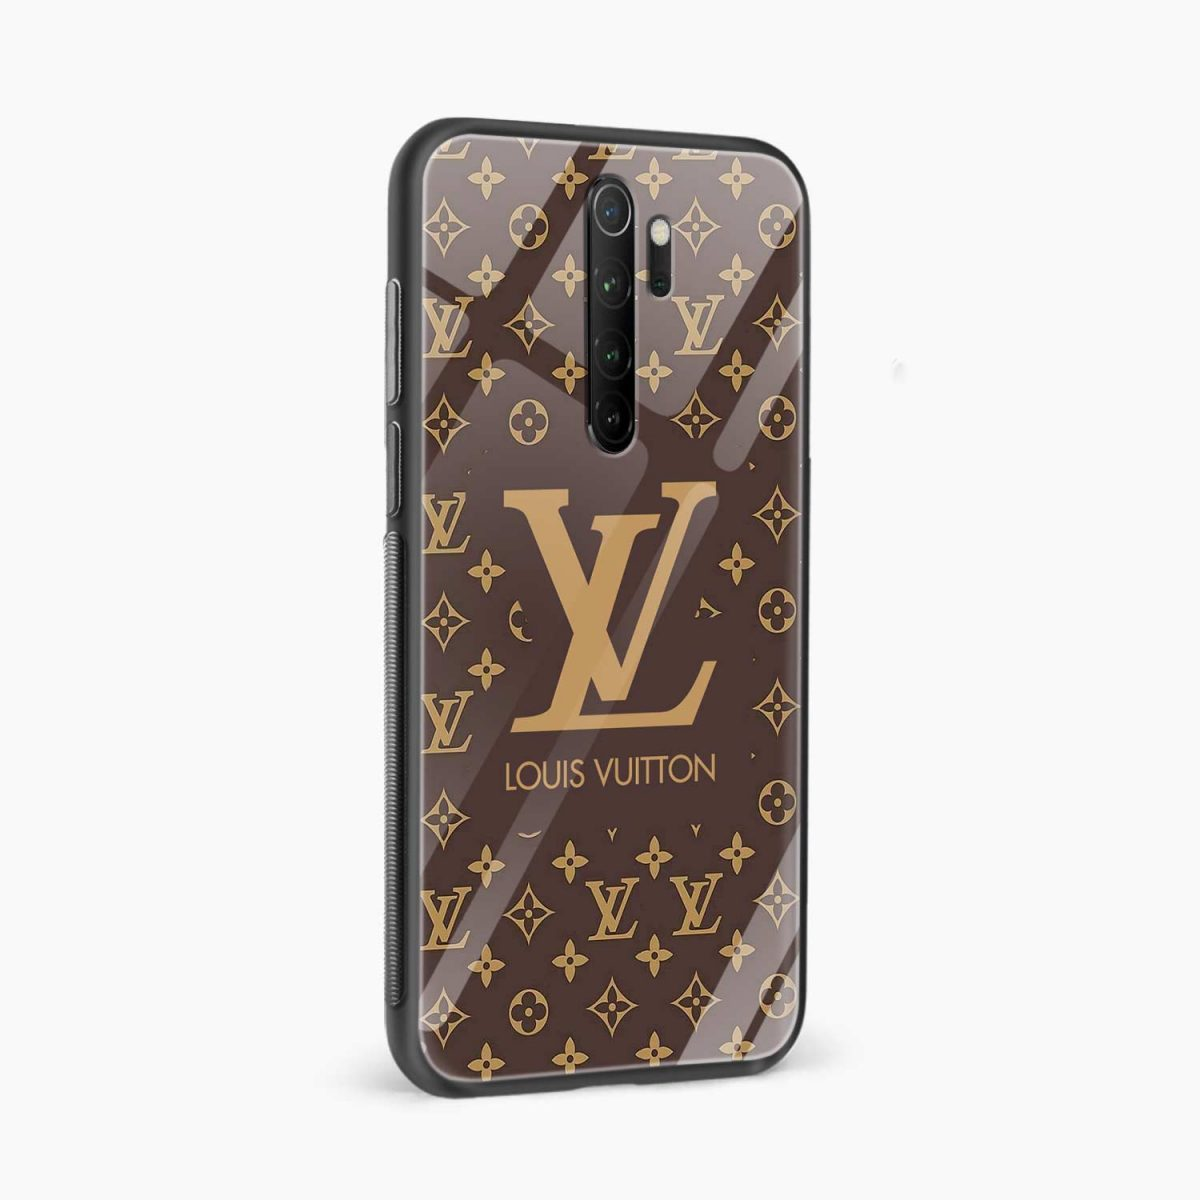 louis vuitton redmi note 8 pro back cover side view